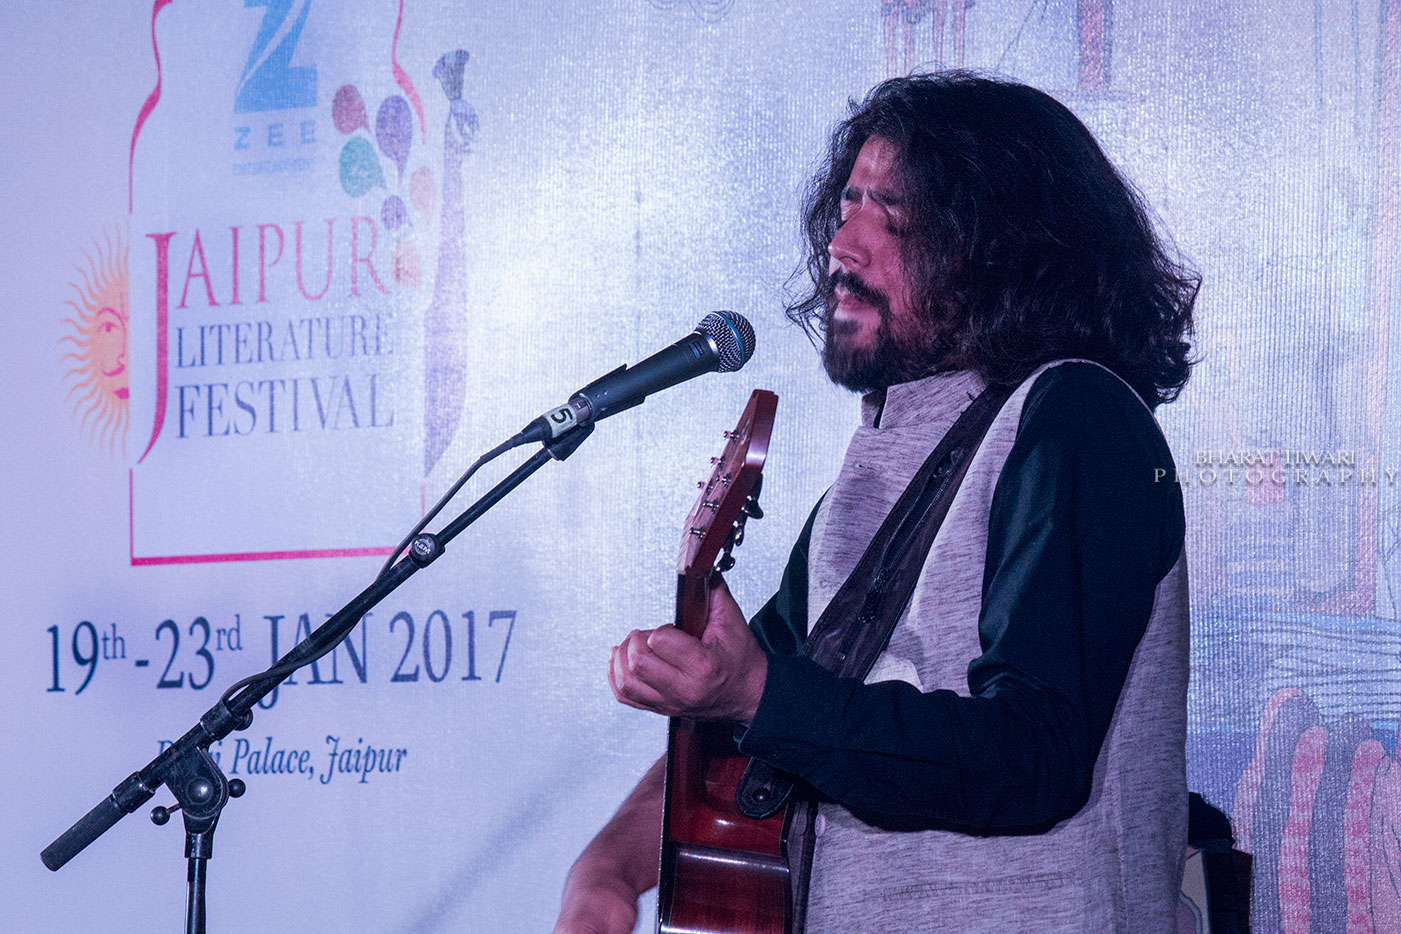 joyous musical performances performed by Harpreet Singh